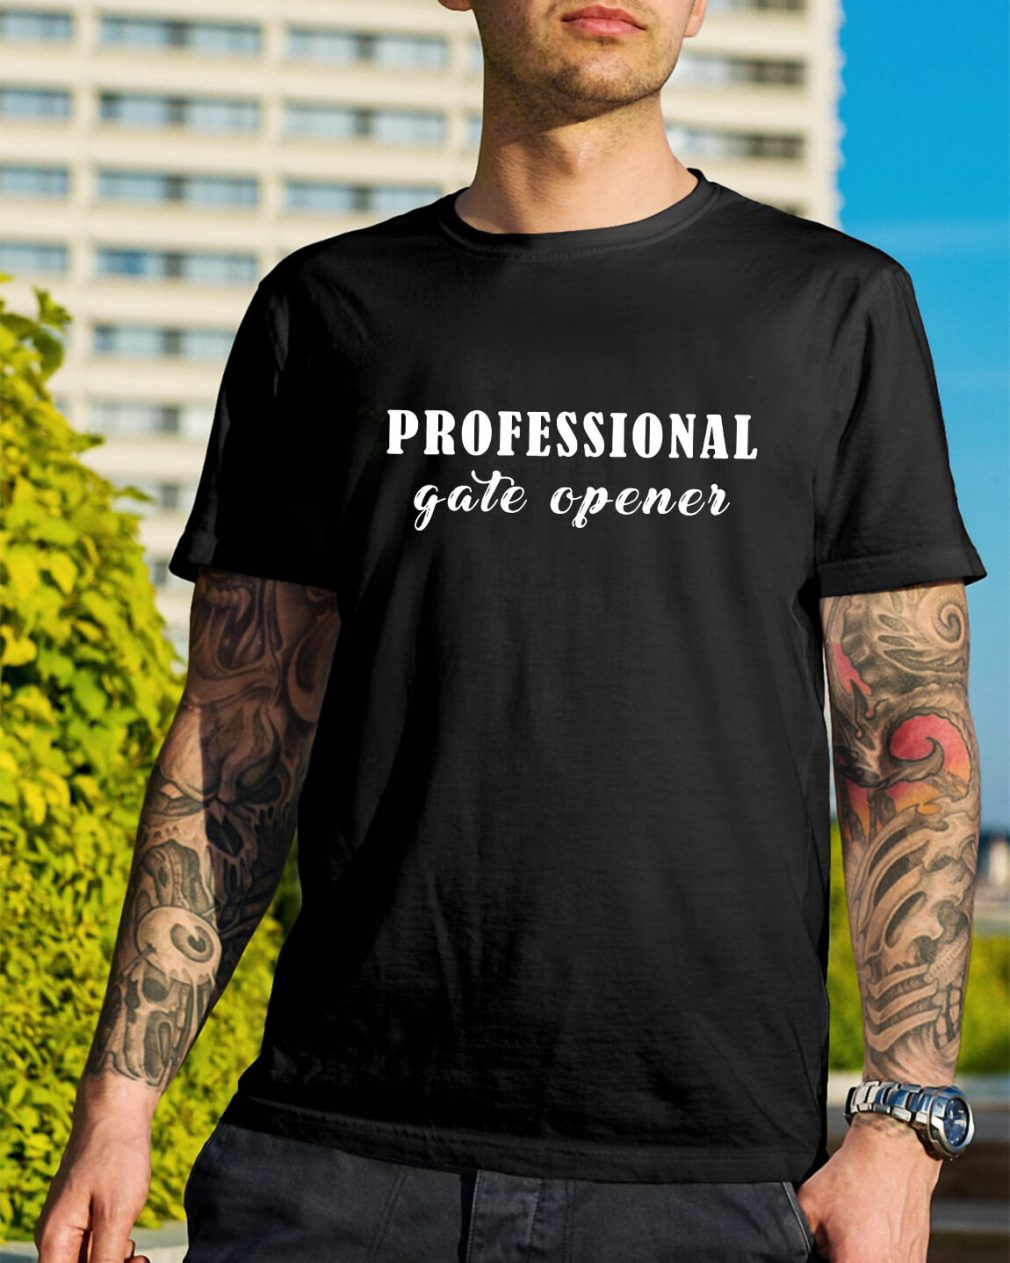 Professional gate opener shirt